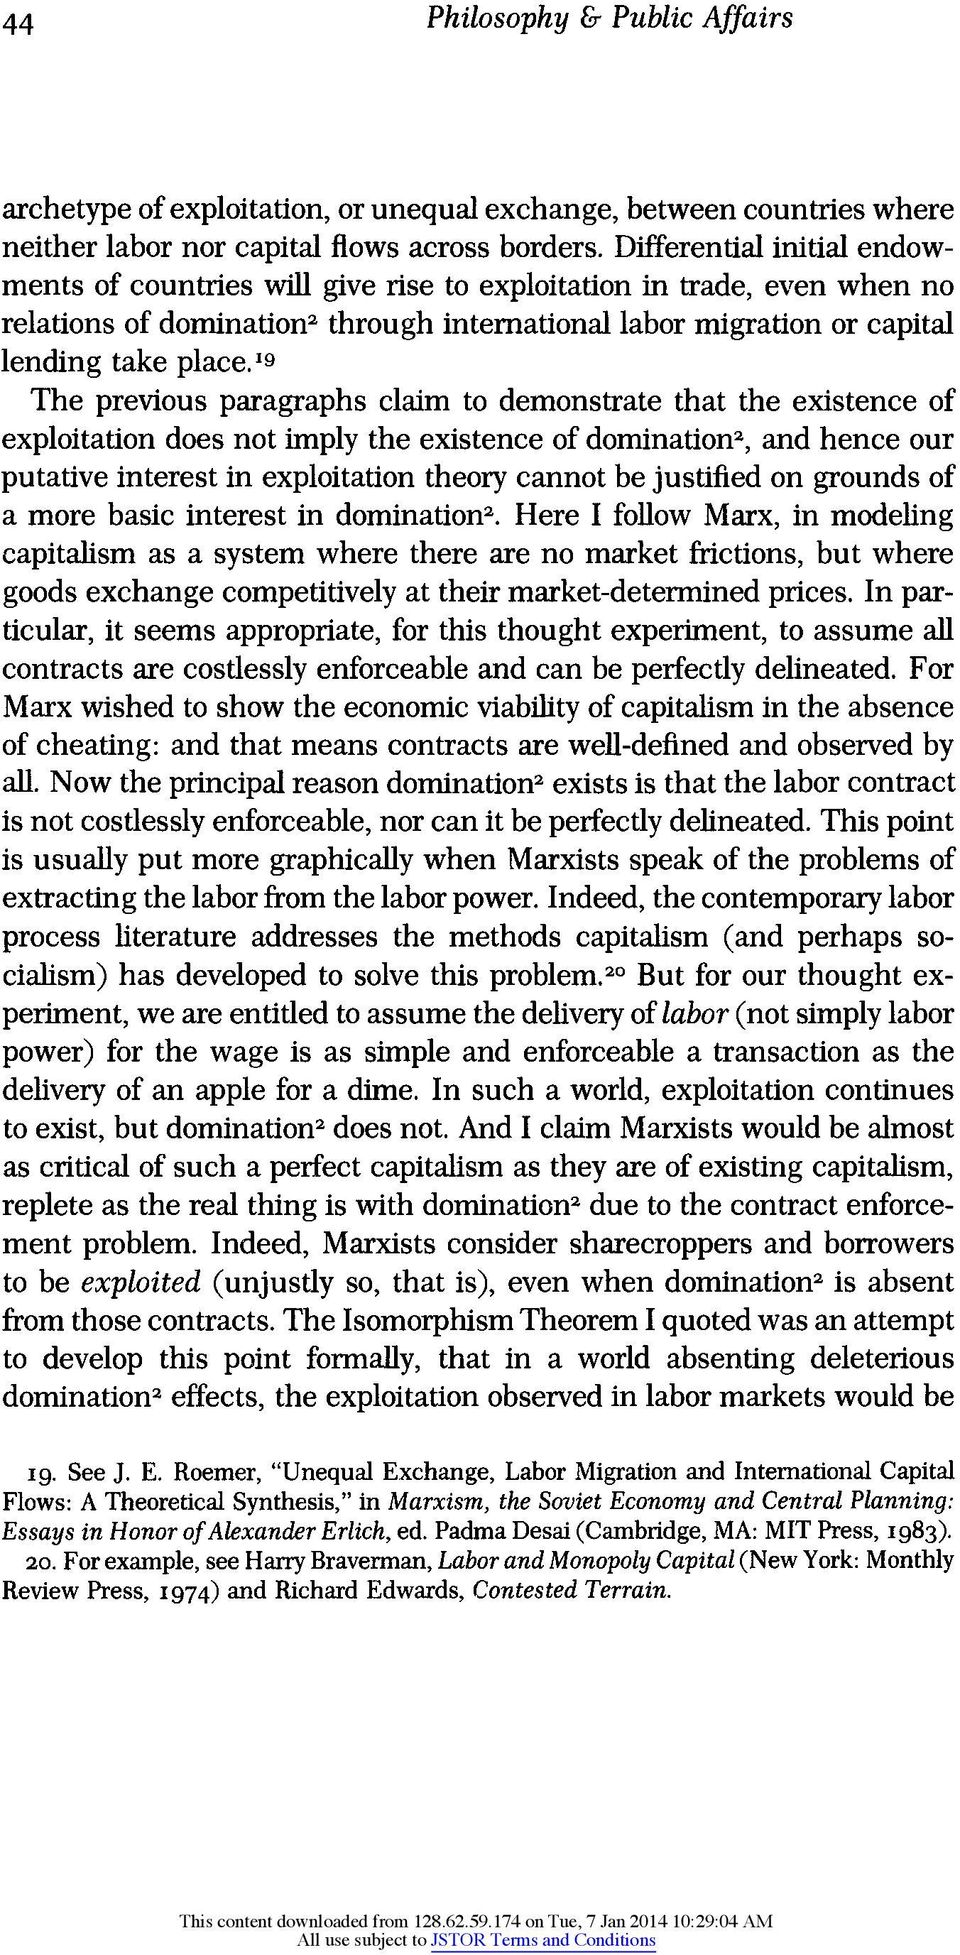 19 The previous paragraphs claim to demonstrate that the existence of exploitation does not imply the existence of domination2, and hence our putative interest in exploitation theory cannot be